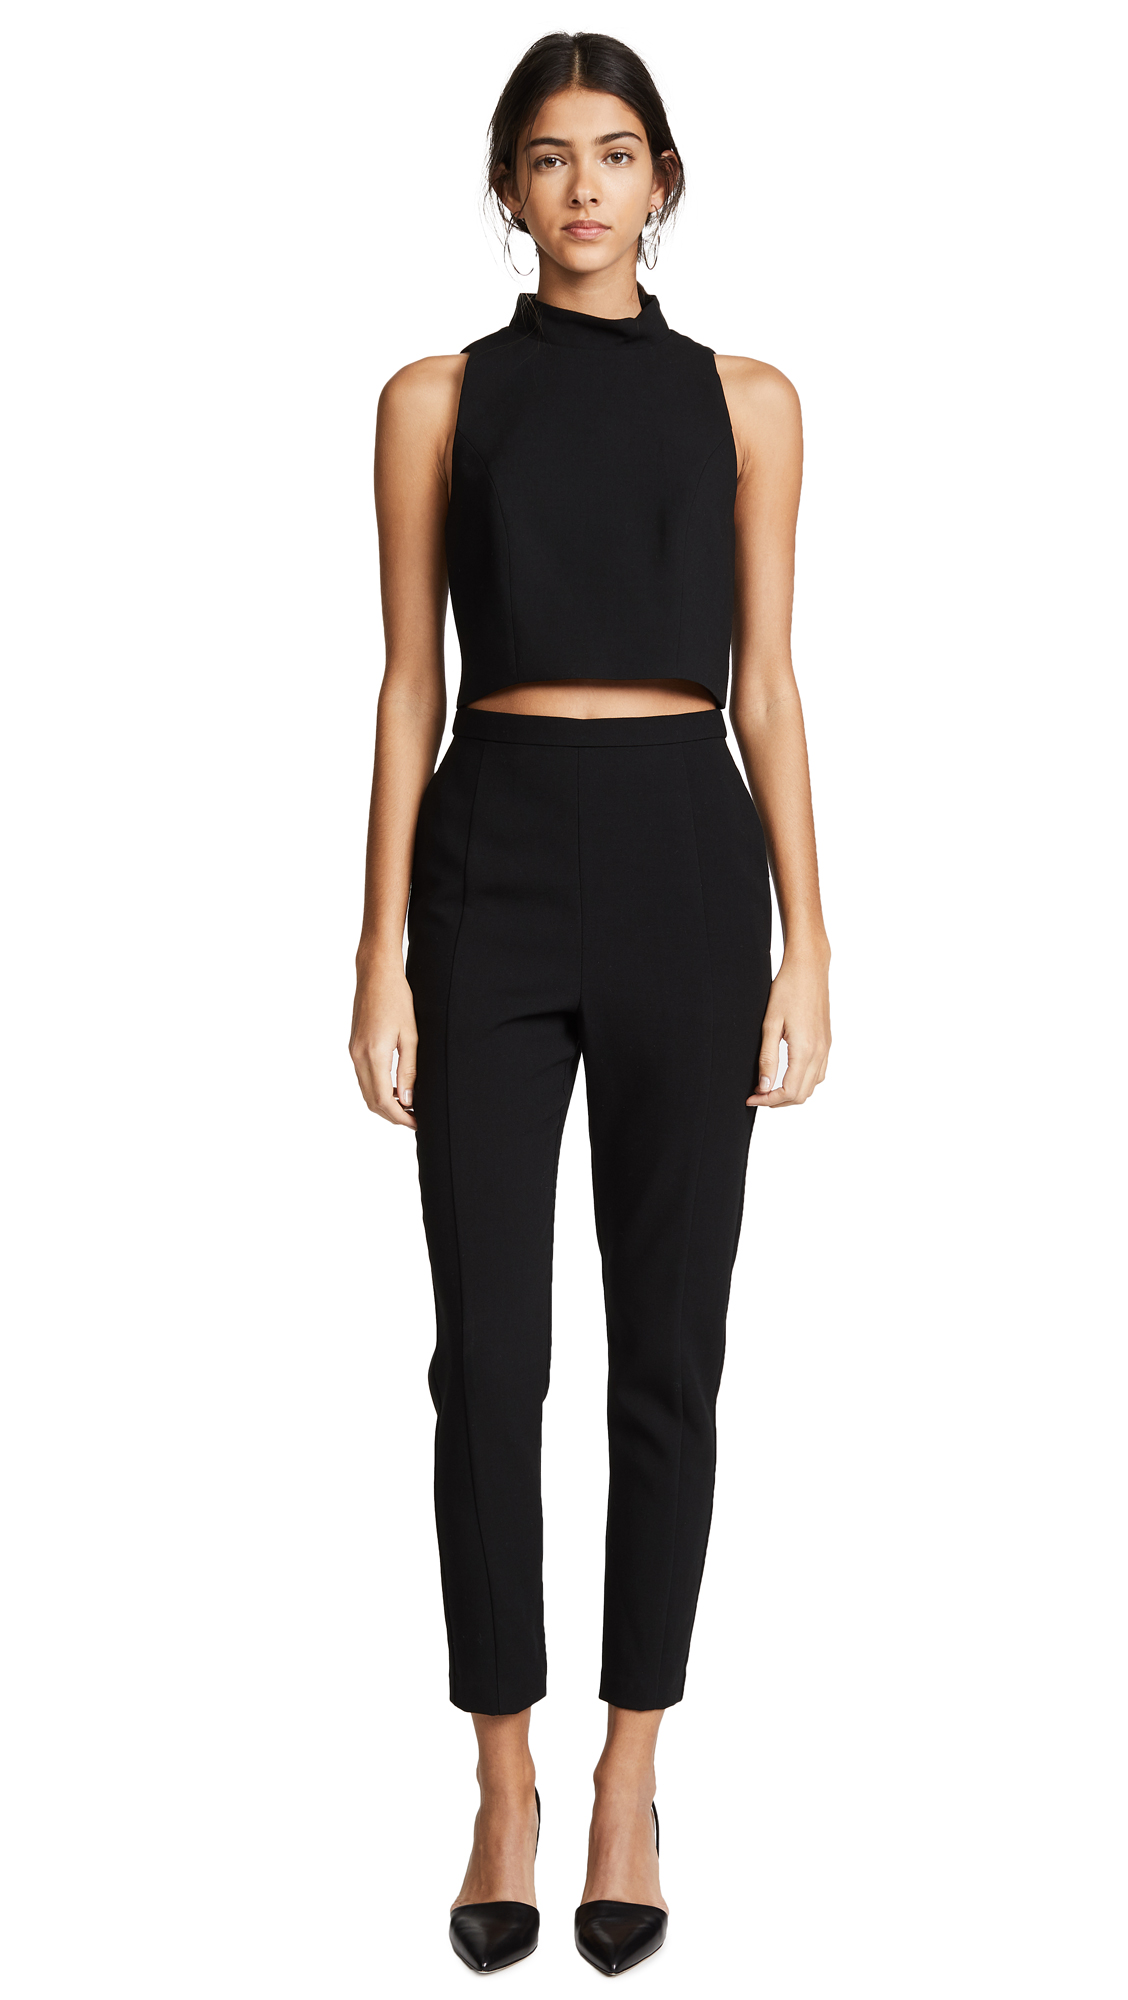 Black Halo Juma Jumpsuit In Black